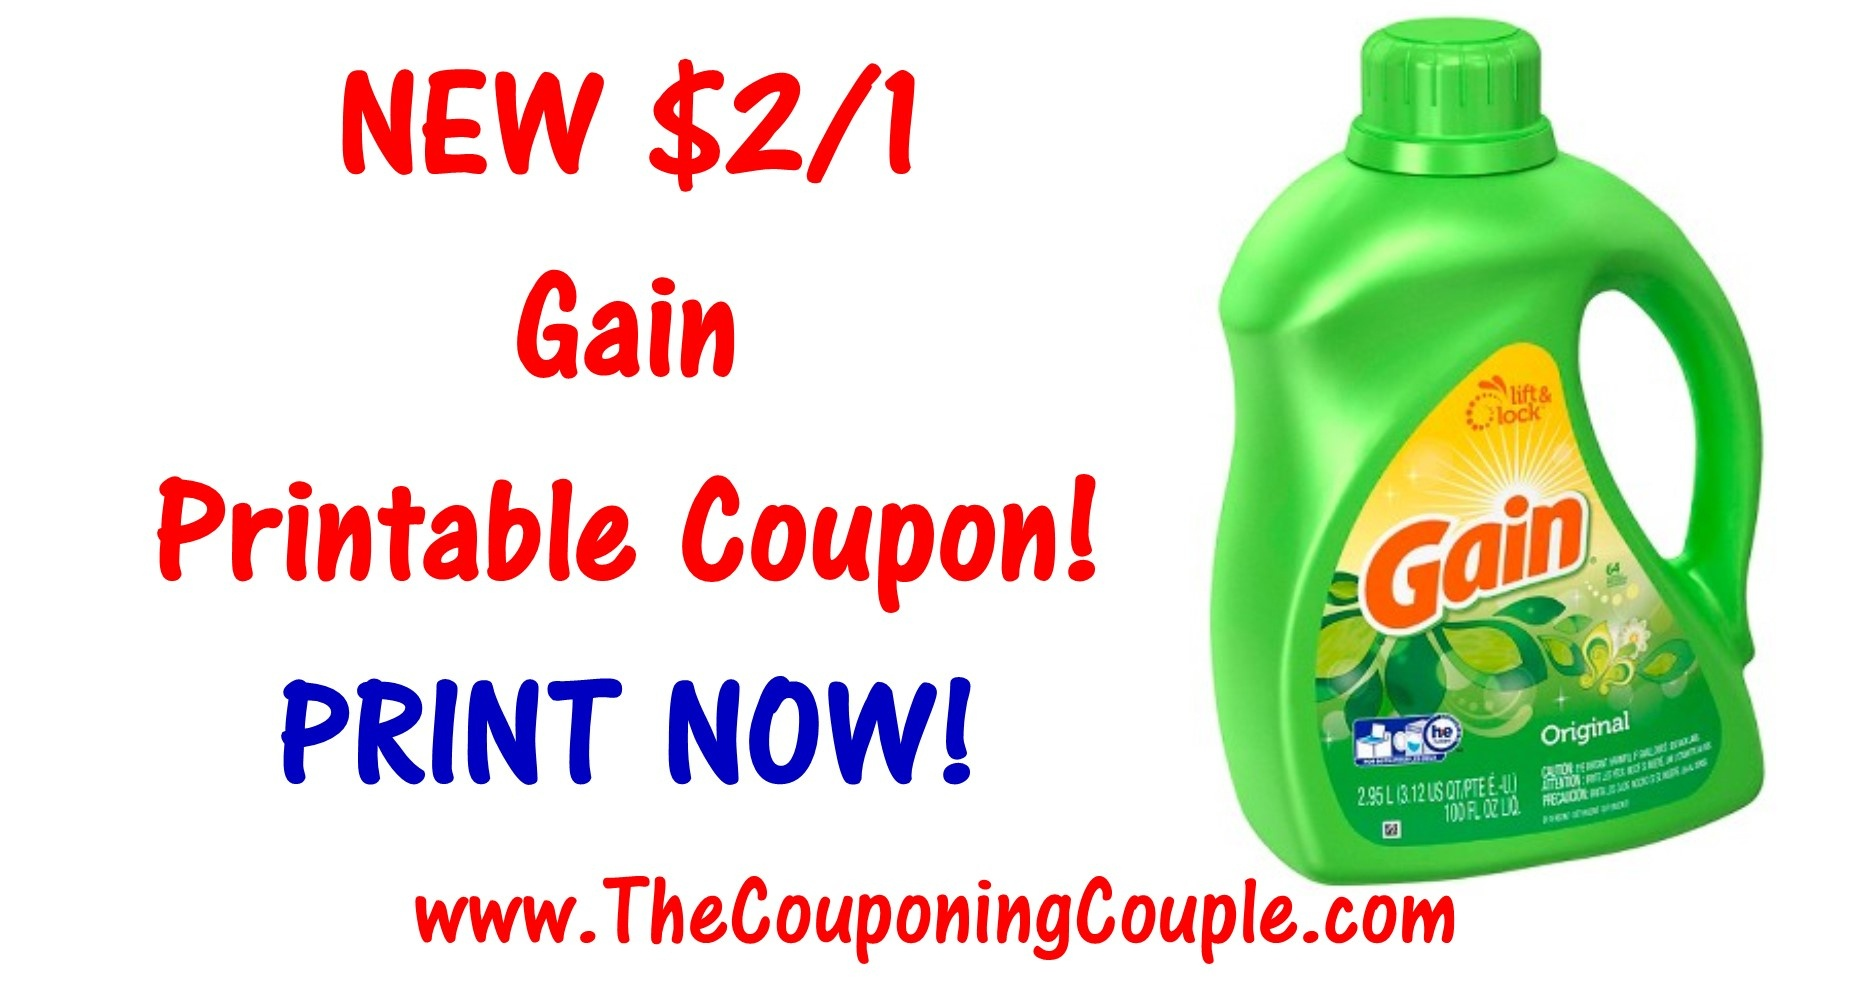 New Gain Printable Coupon ~ Print $2/1 Coupon Now! - Free Detergent Coupons Printable